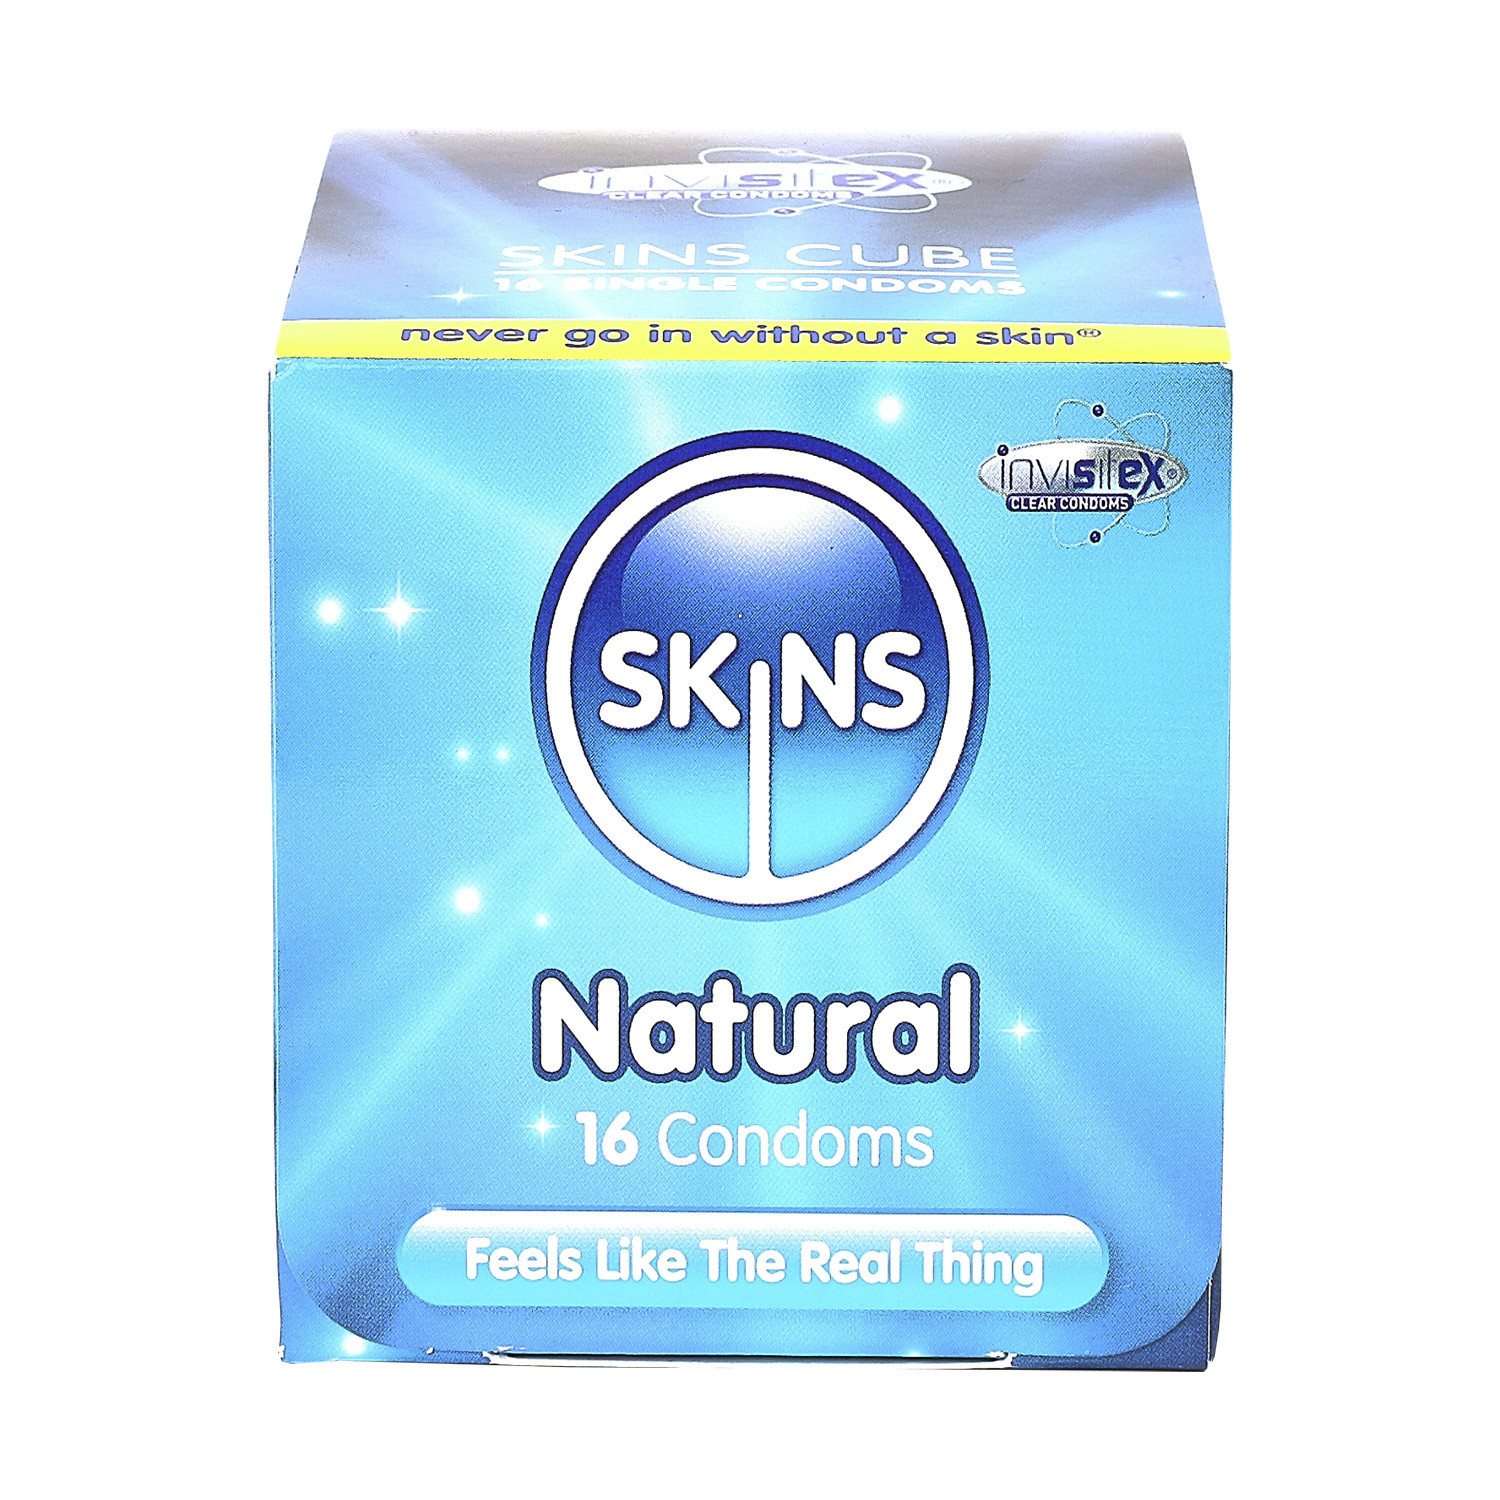 Skins Condoms Natural Cube Pack 16 Condoms